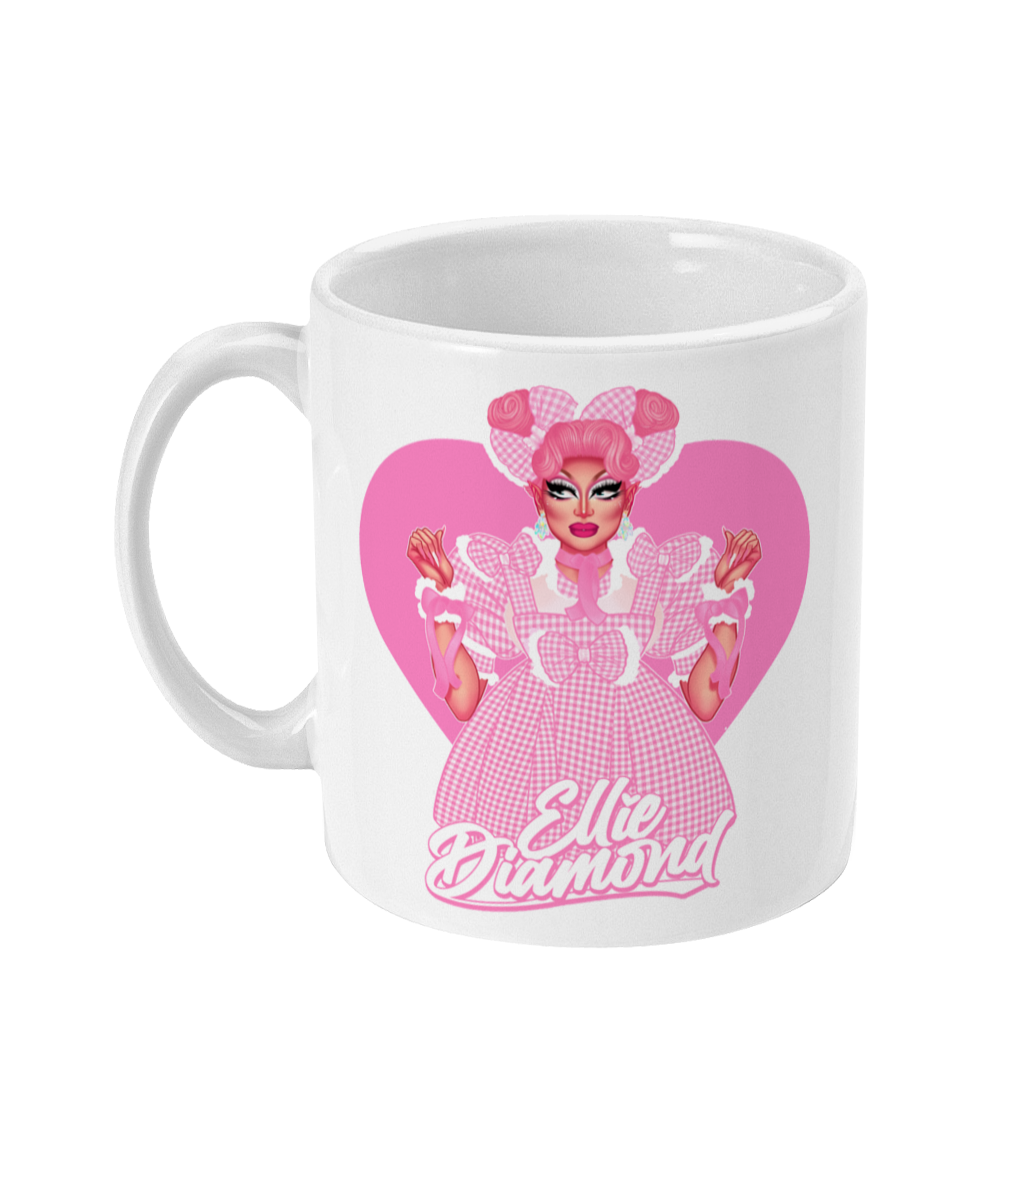 Ellie Diamond - The Dundee Dorothy Mug